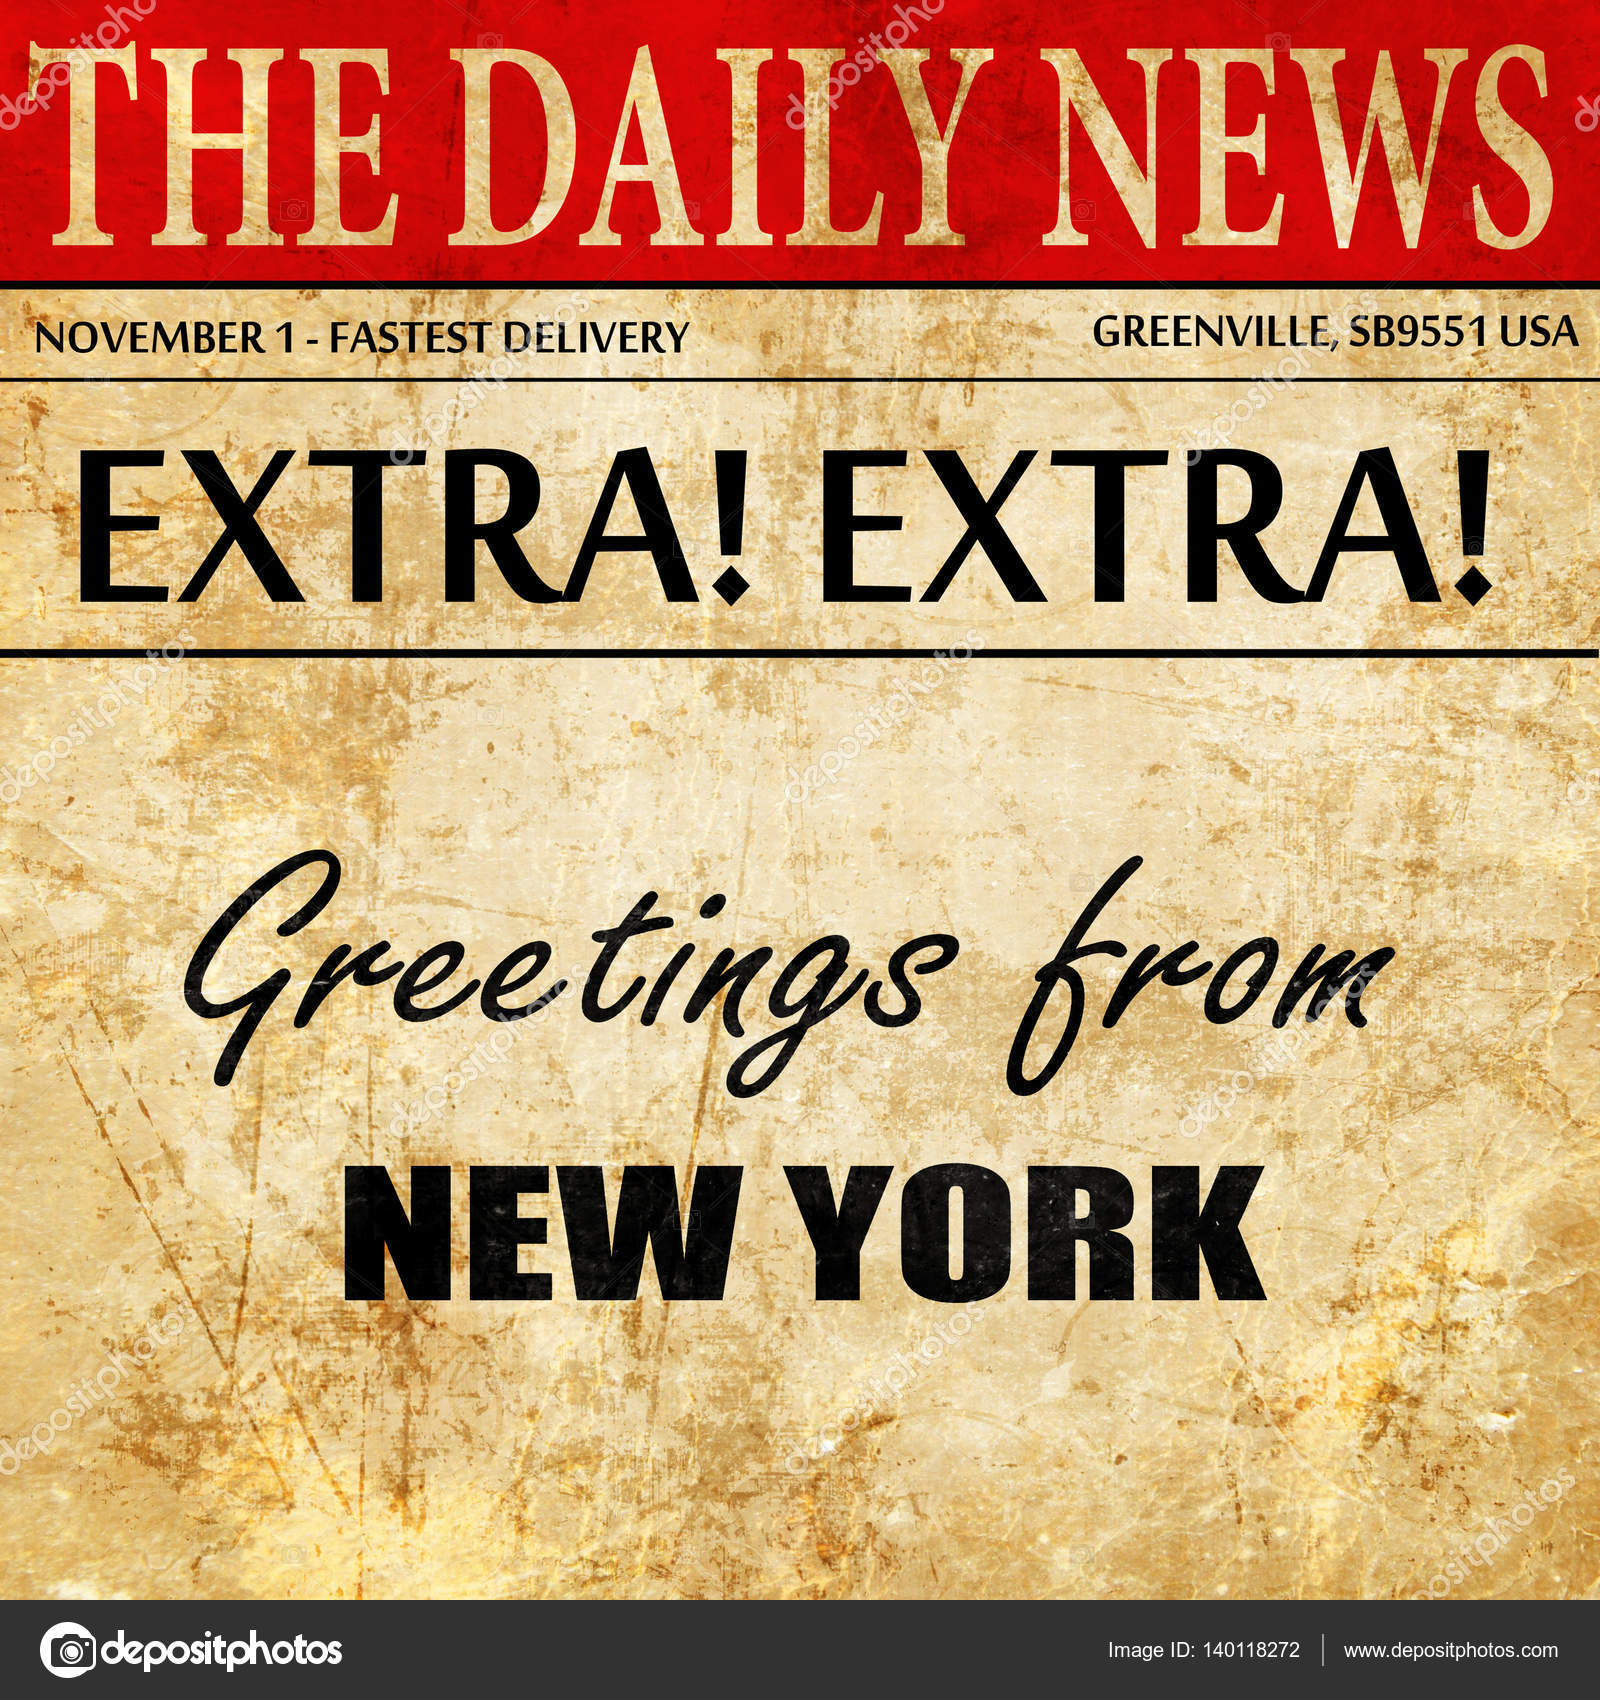 Greetings from new york newspaper article text stock photo greetings from new york newspaper article text stock photo kristyandbryce Images